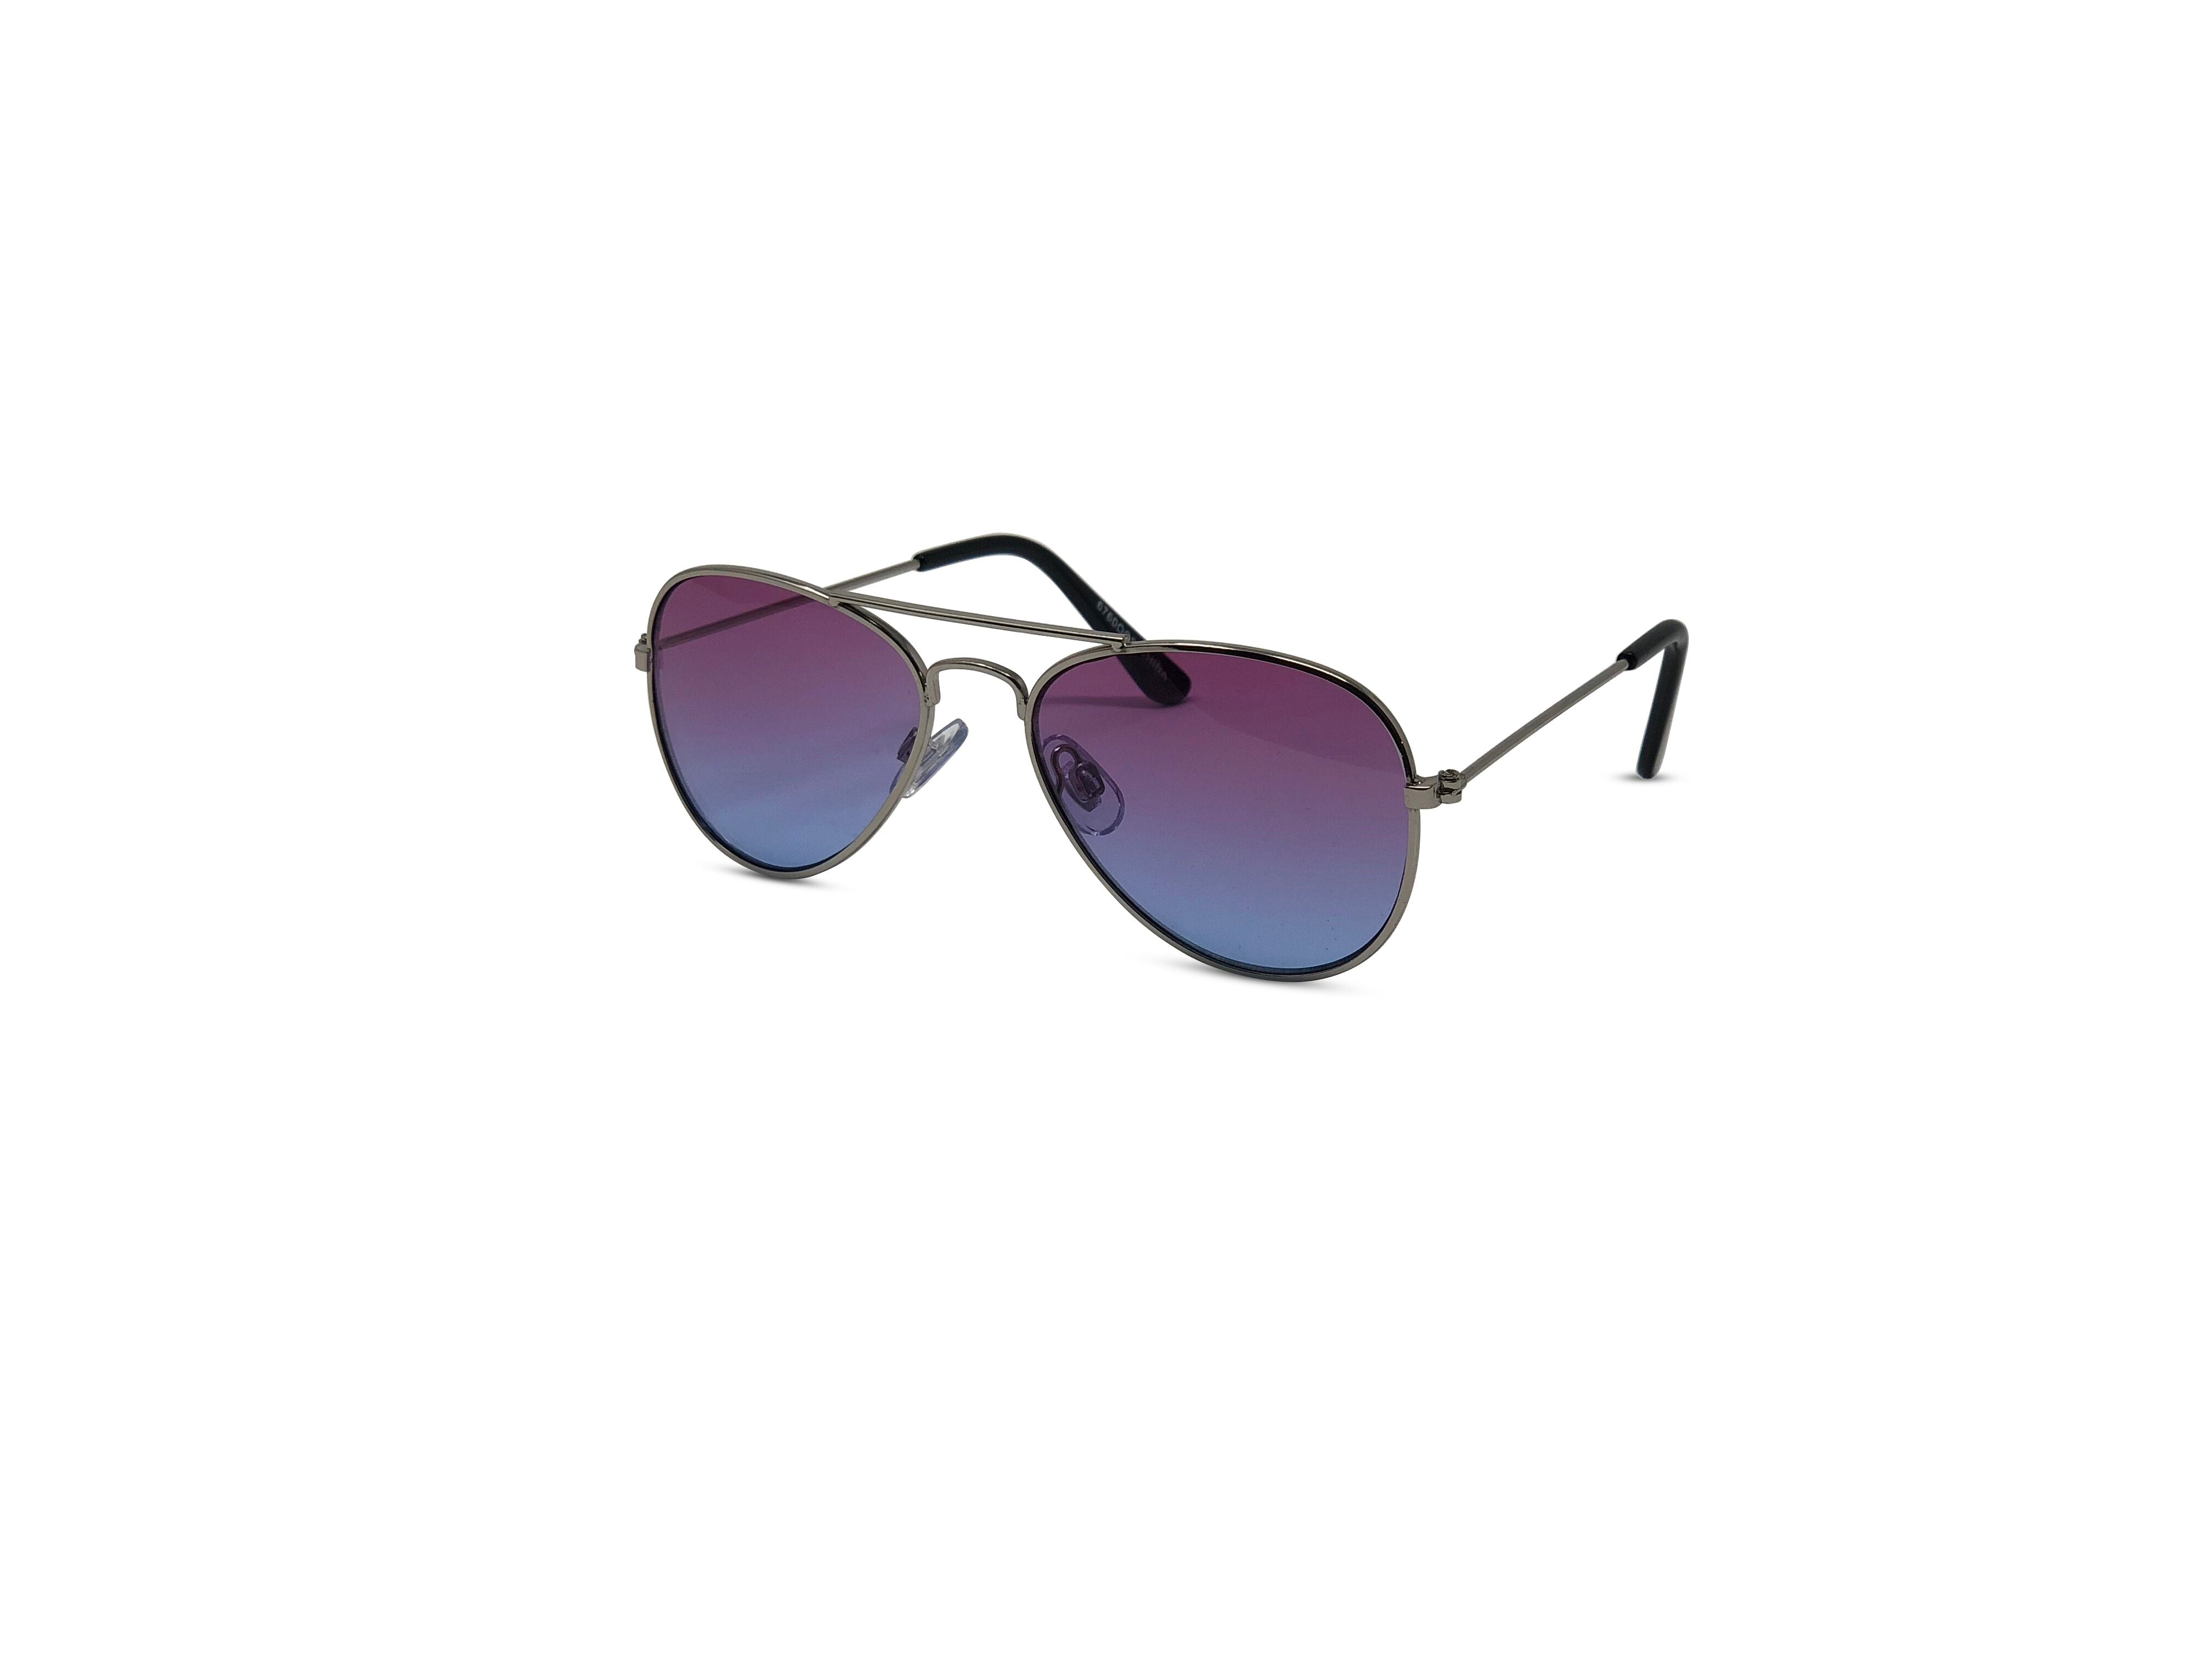 Unisex Kid Sized Ombre Colored Translucent Style Sunglasses